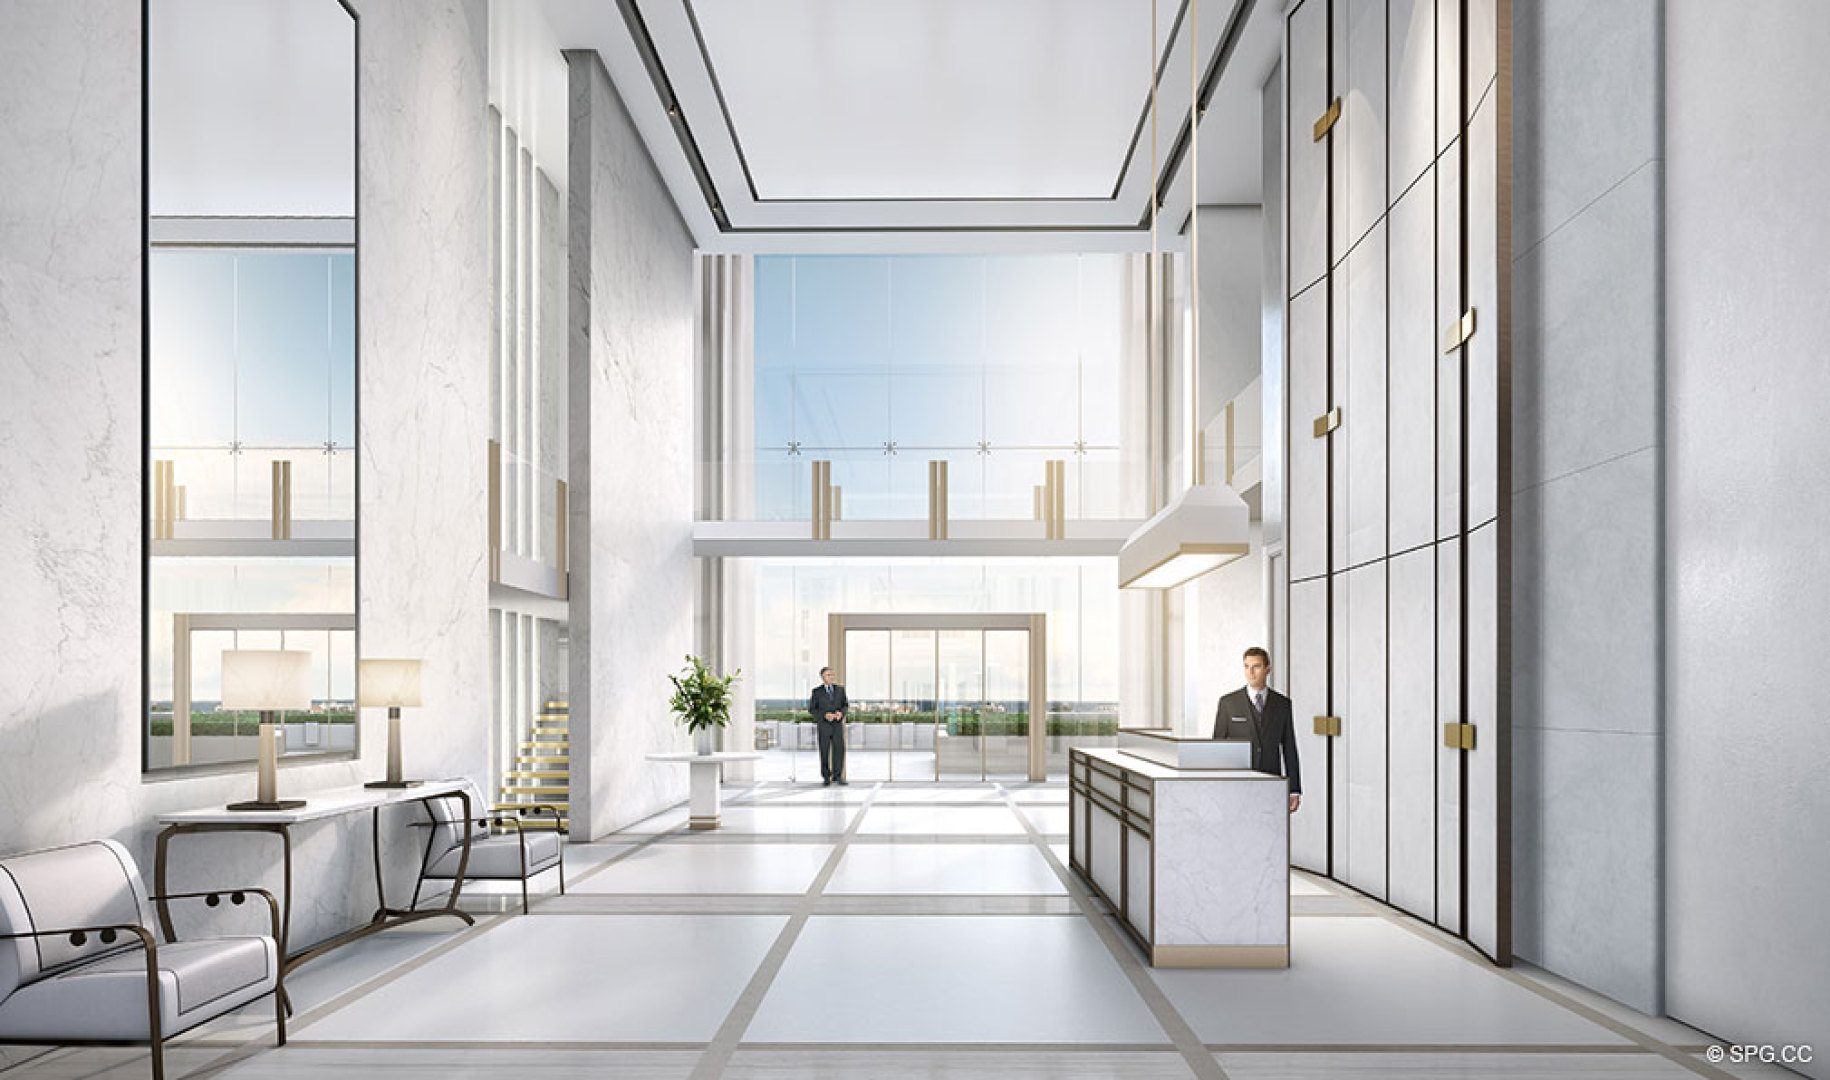 Main Lobby inside The Bristol, Luxury Waterfront Condos in West Palm Beach, Florida 33401